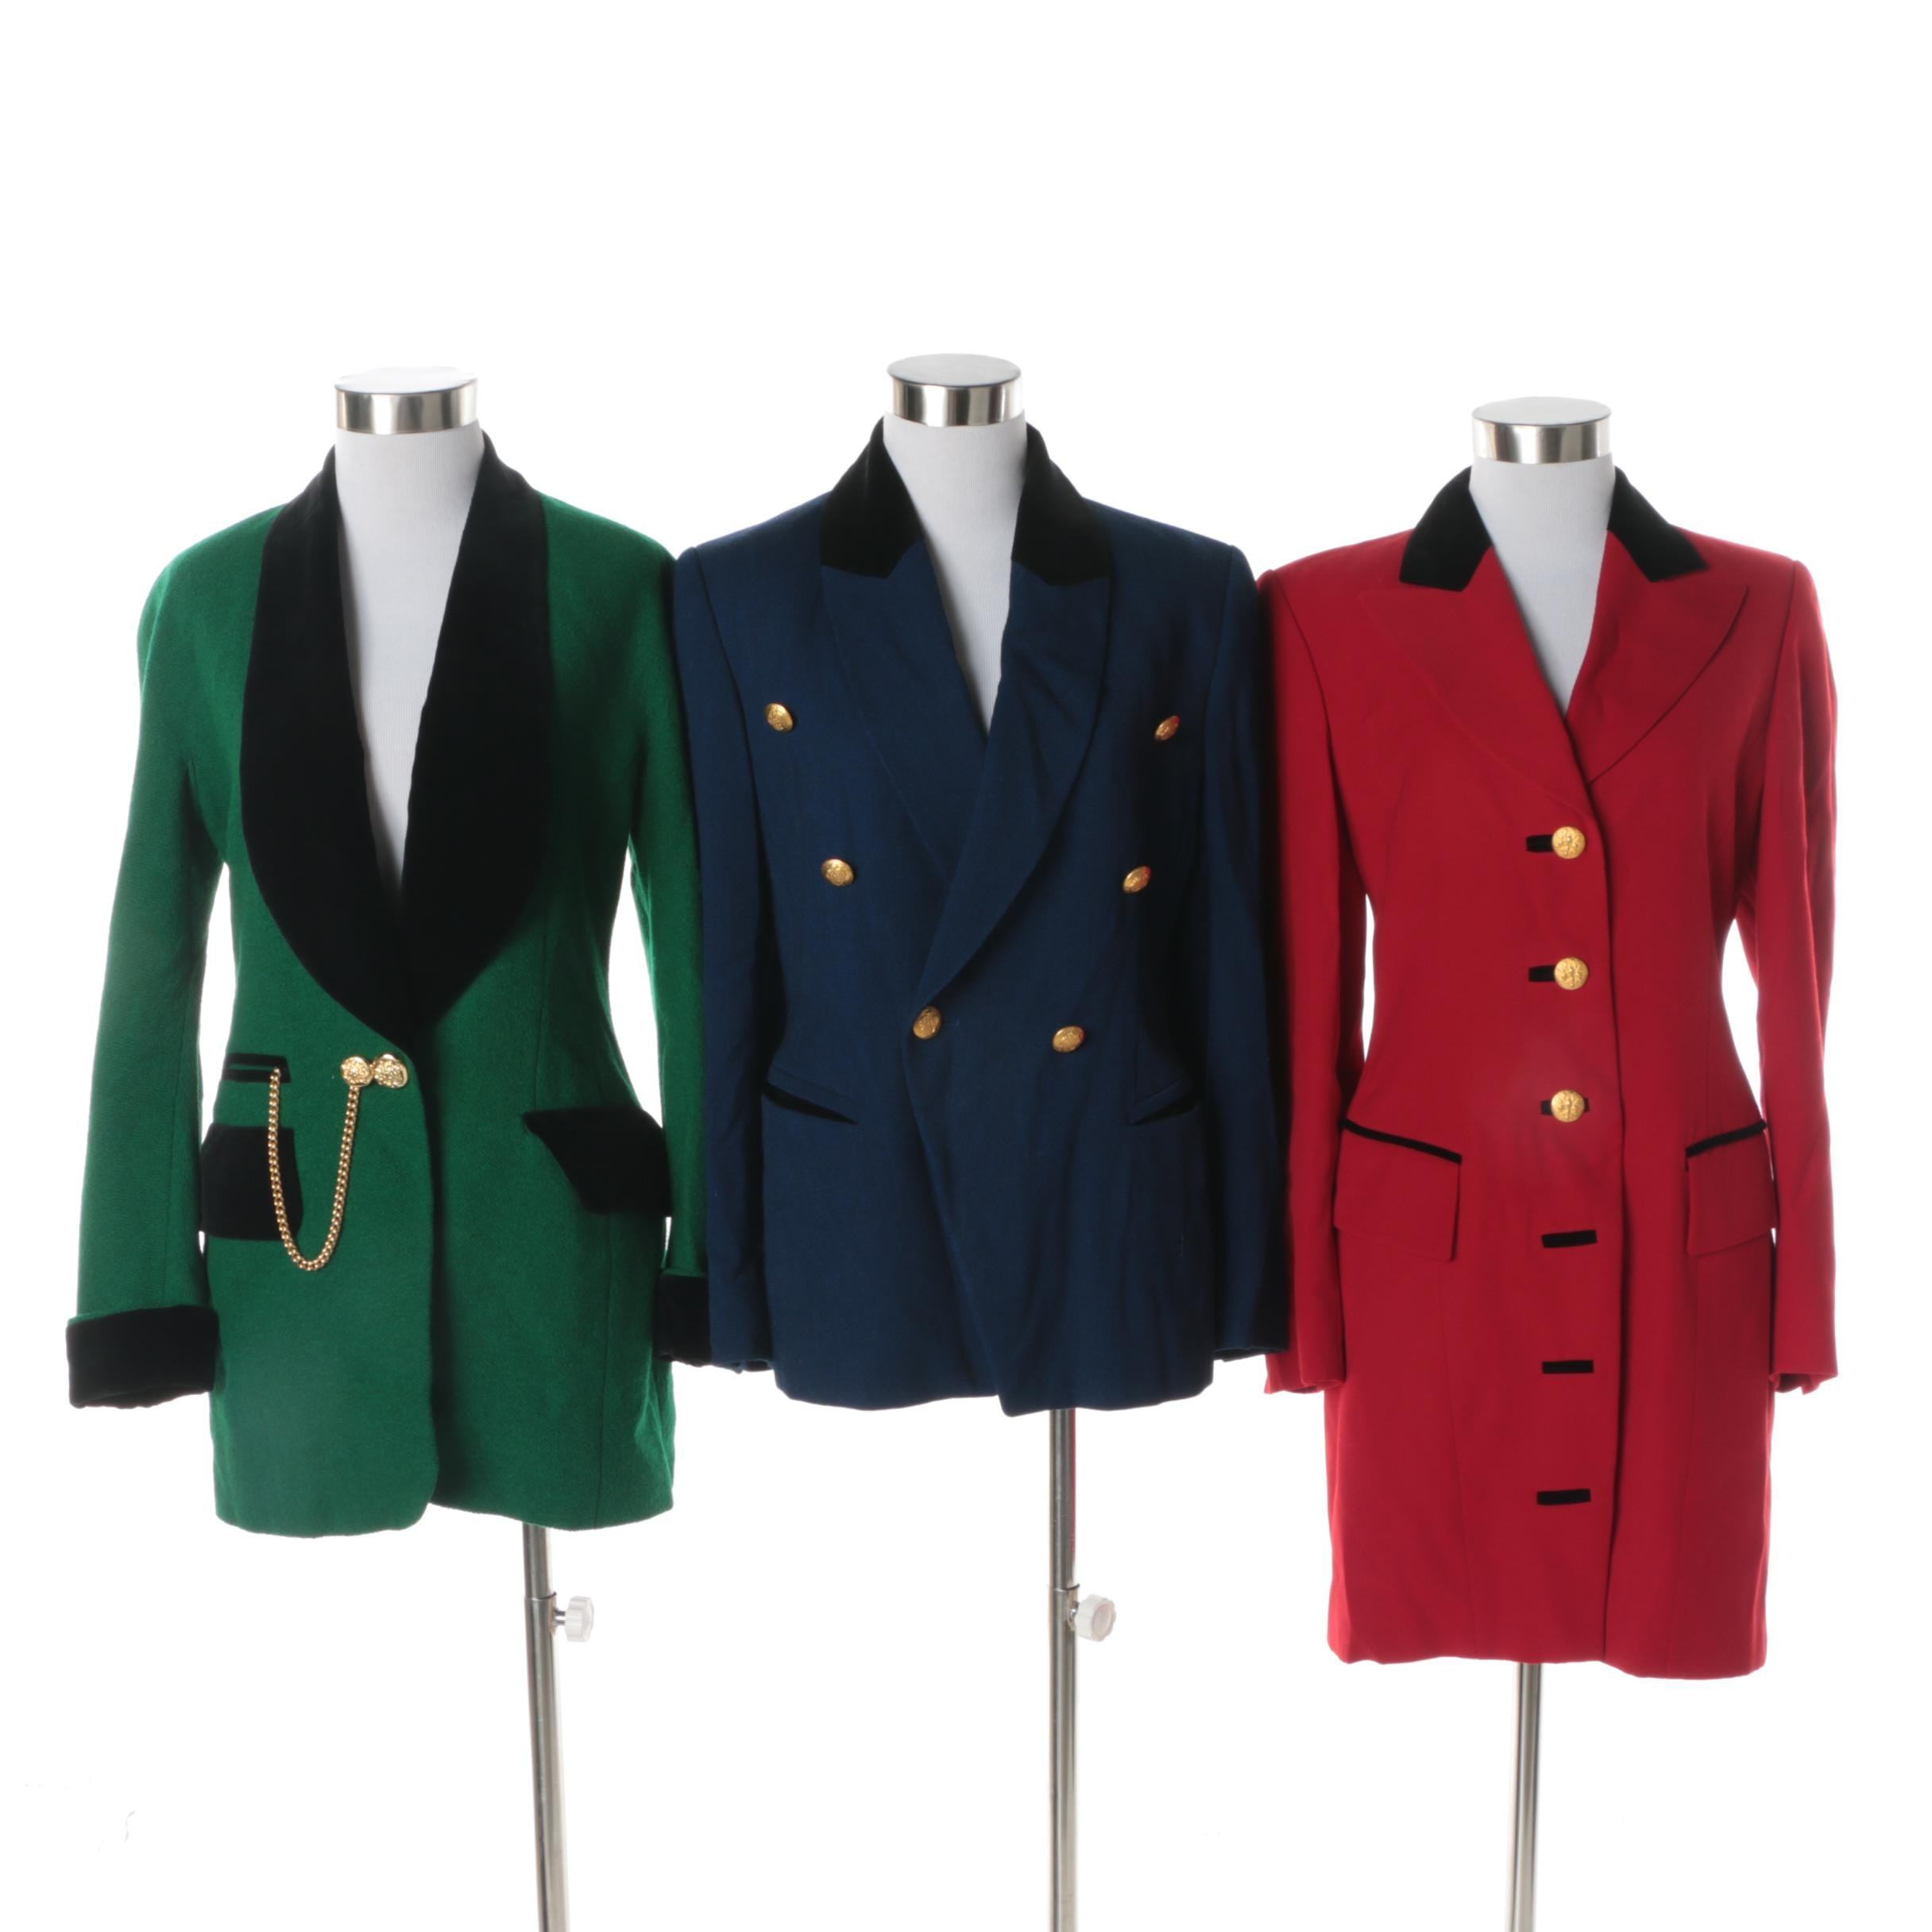 Women's Escada Margaretha Ley Wool and Wool Blend Jackets with Velvet Trim